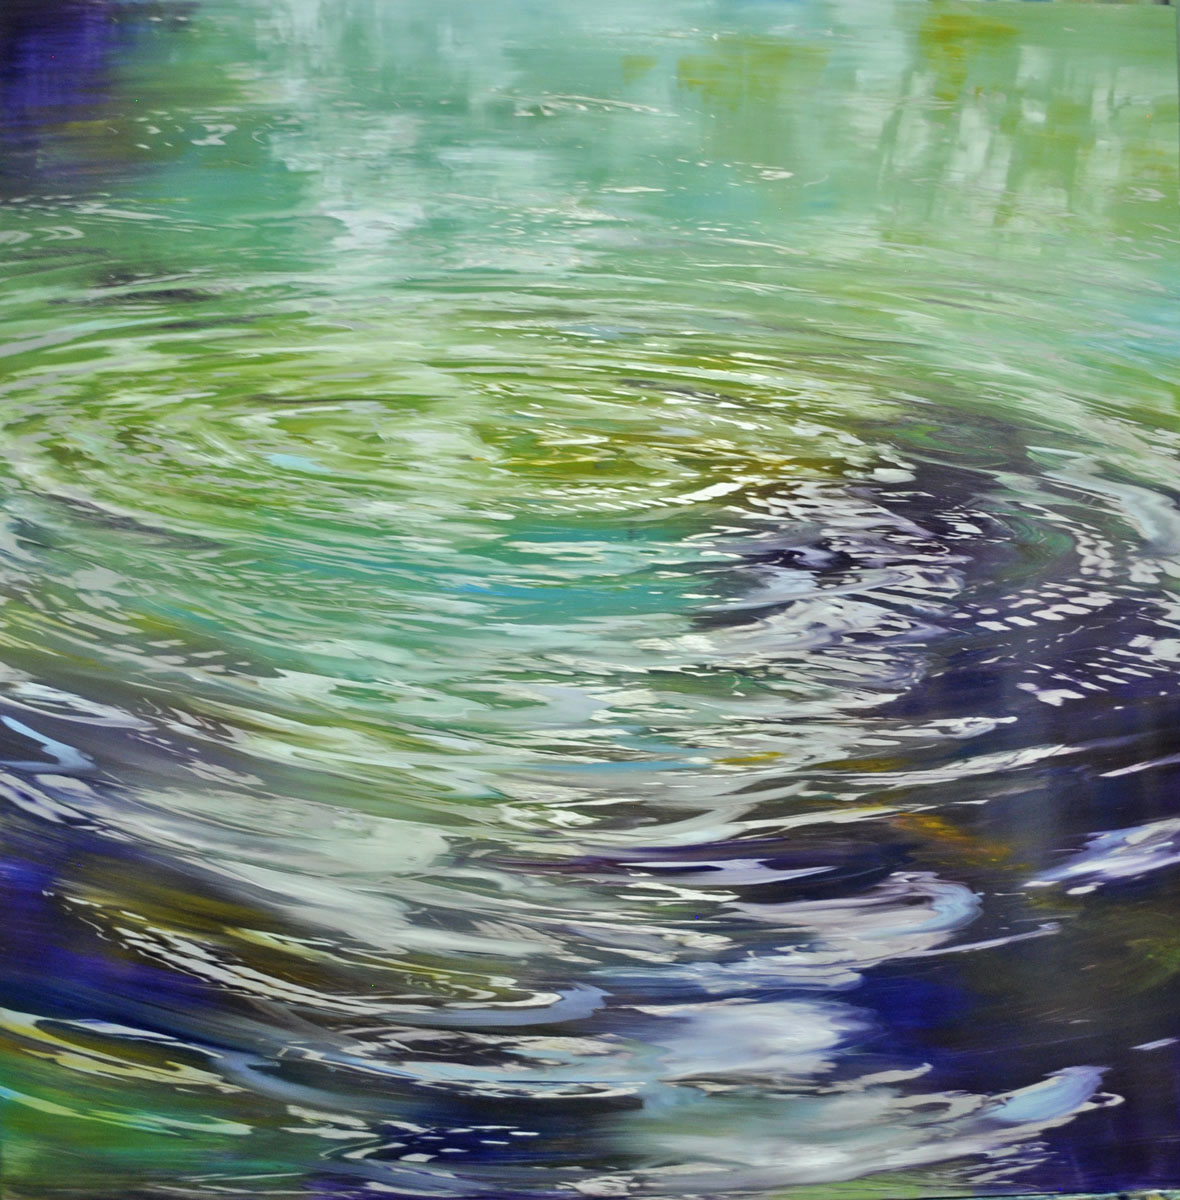 """Water Circles, Concentric Rhythms"", oil on anodized aluminum, 48x48"